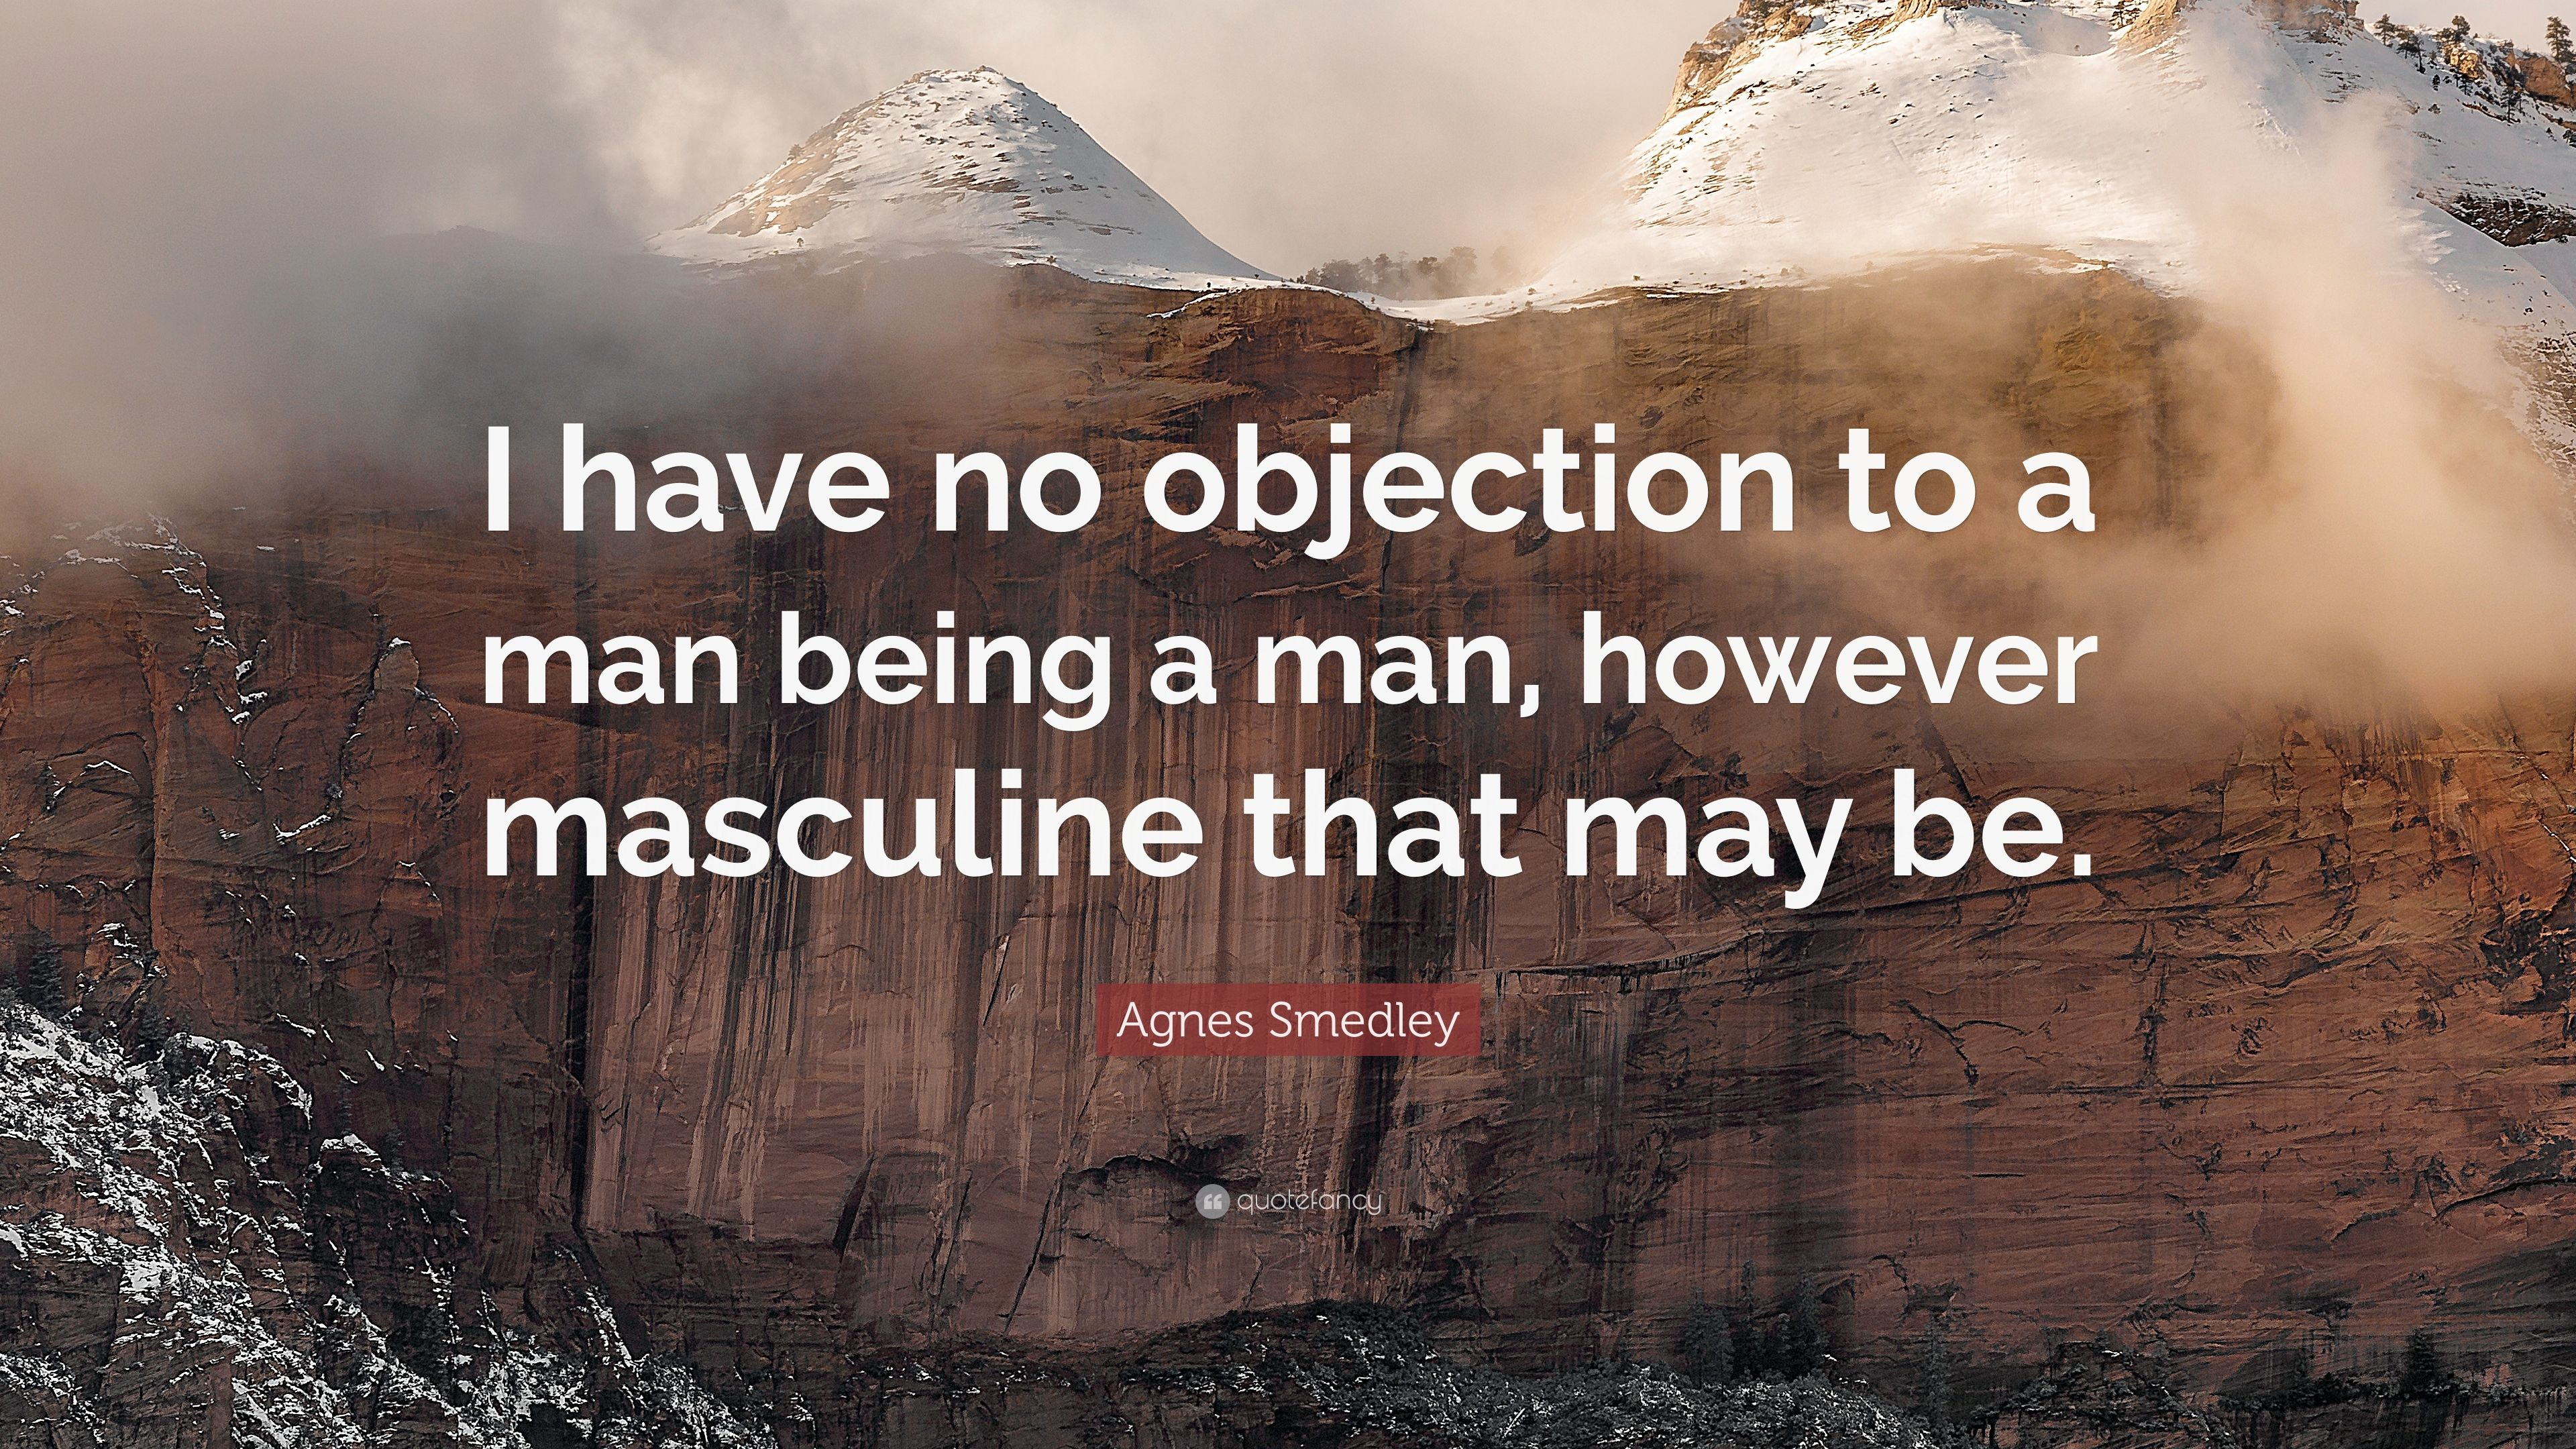 Agnes Smedley Quote: U201cI Have No Objection To A Man Being A Man,